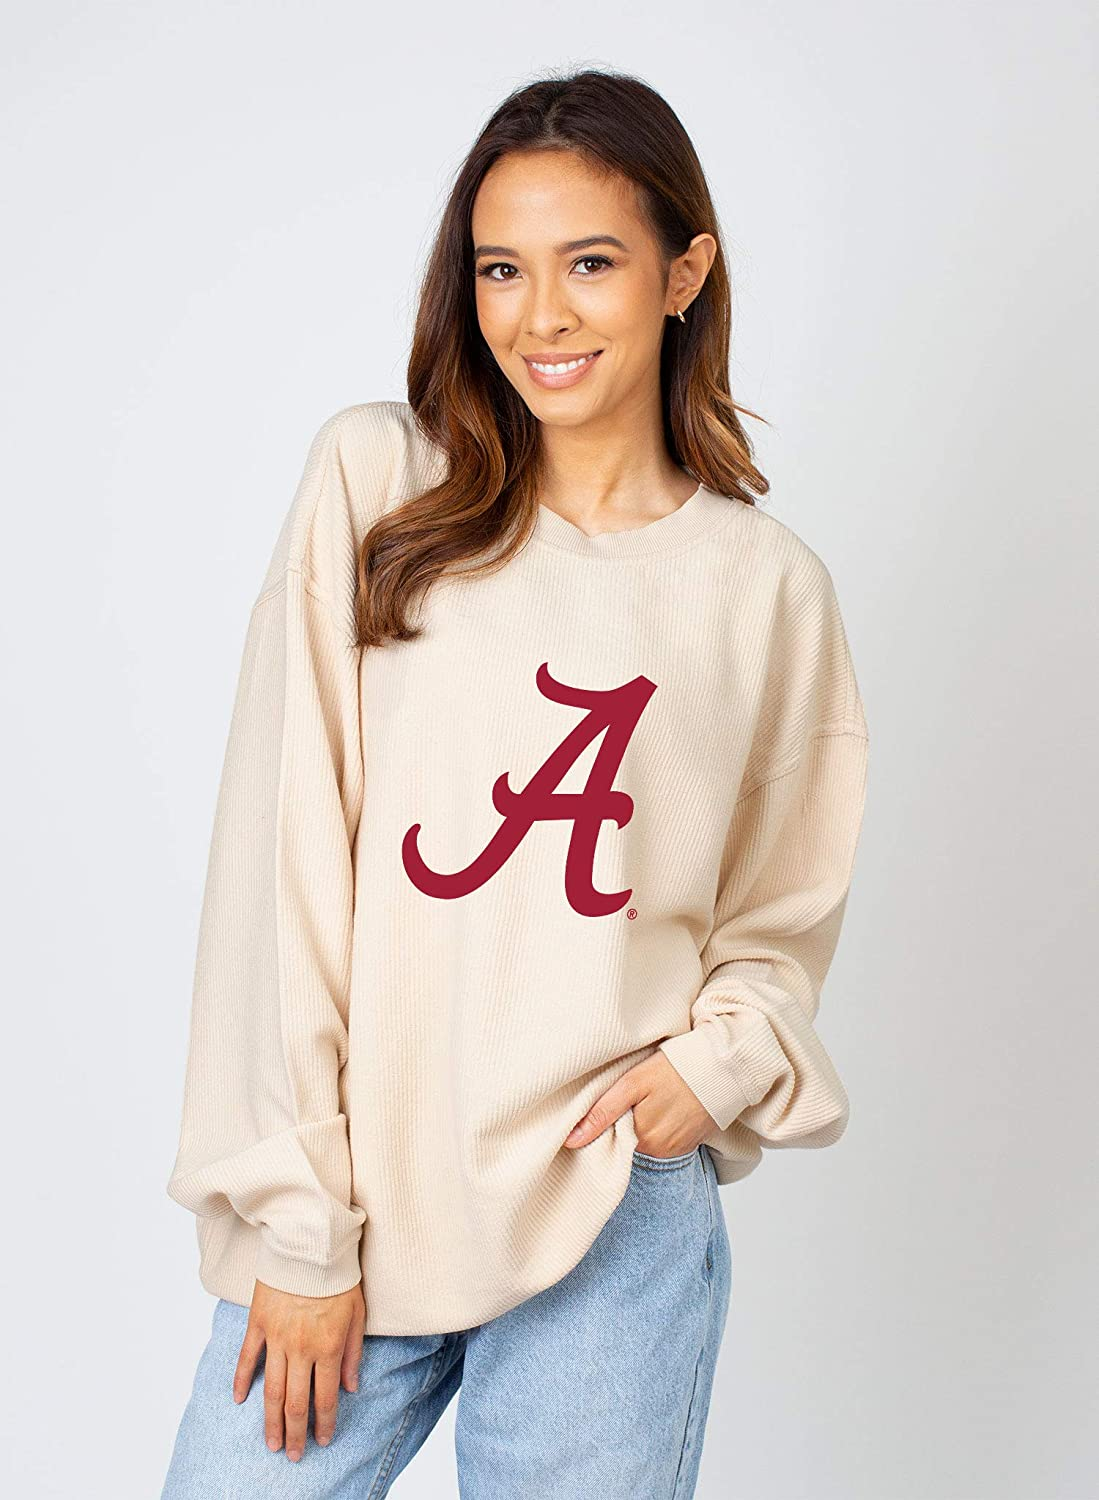 chicka-d NCAA womens Corded Crew Team Sweatshirt